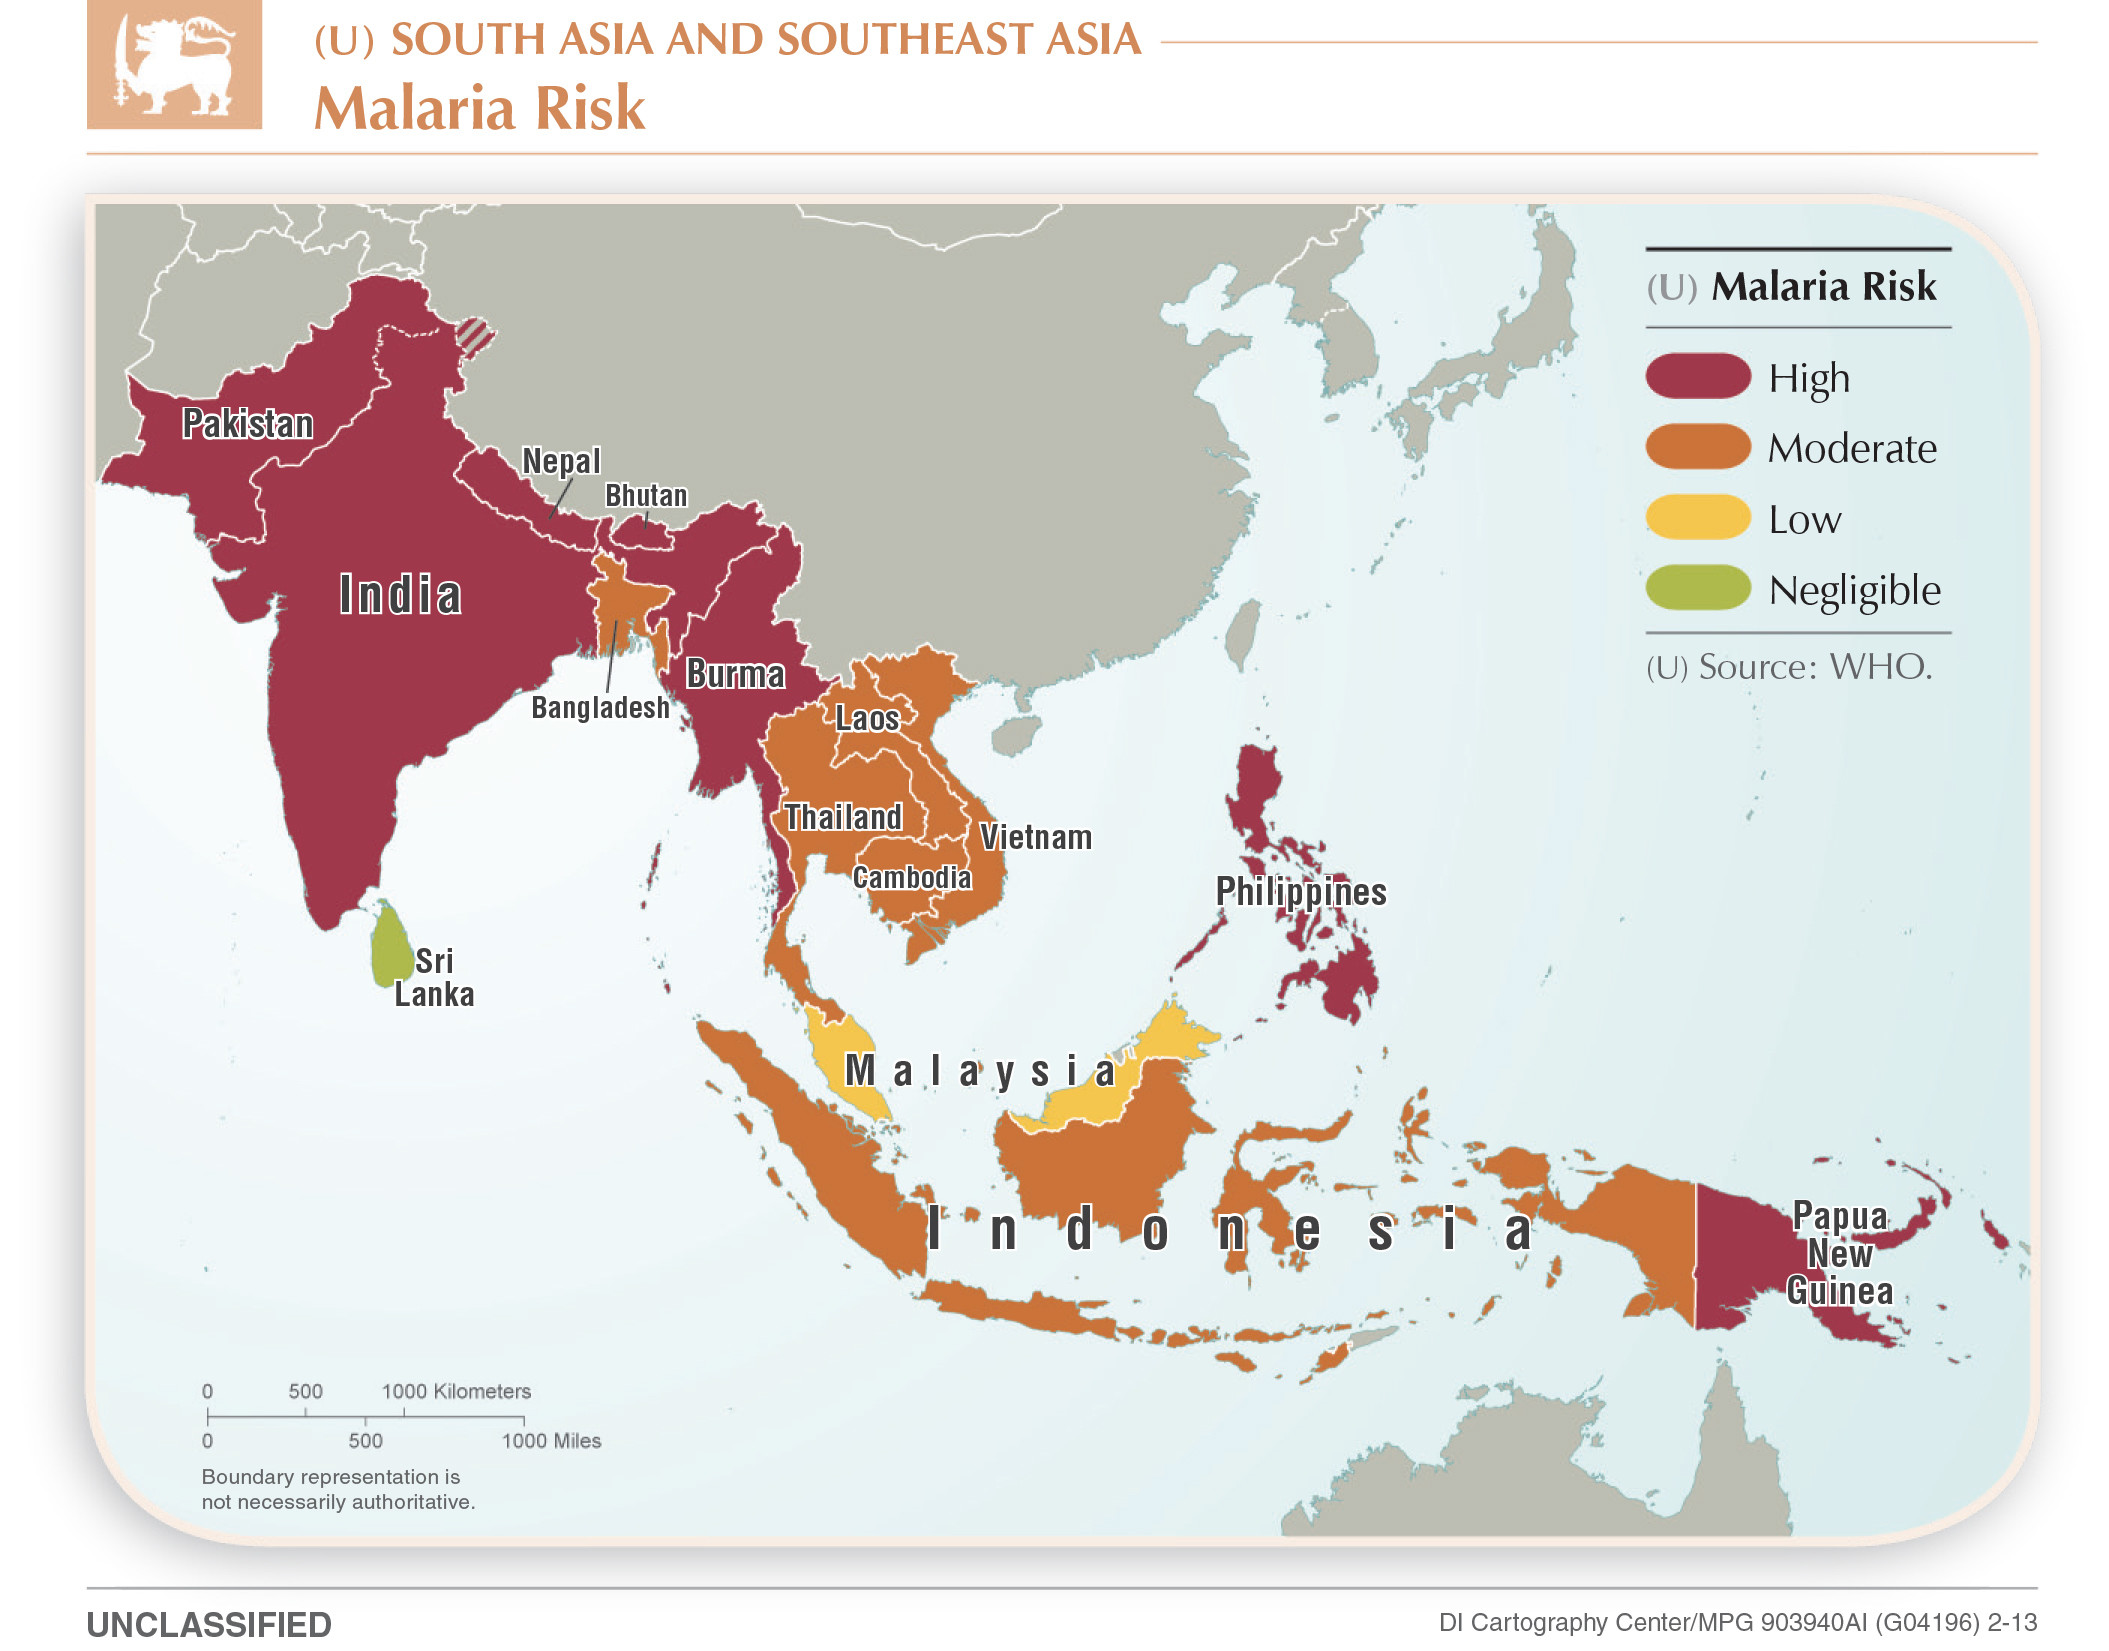 Malaria risk in South and Southeast Asia